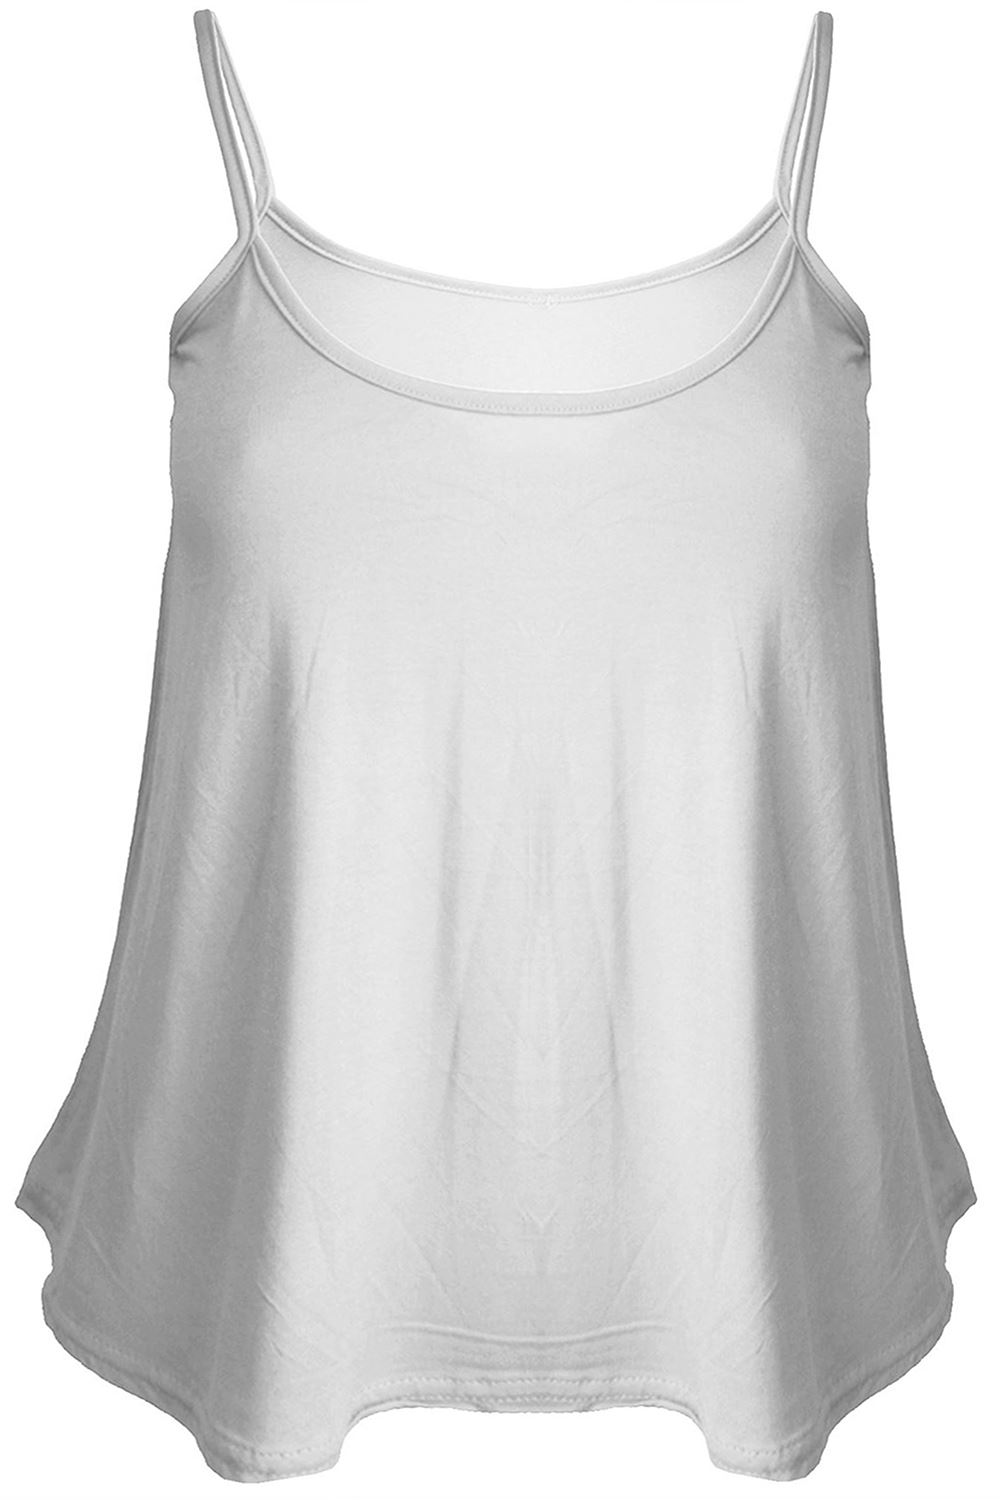 1c07ccee33e5a Plus Size Womens Ladies Cami Sleeveless Swing Vest Strappy Plain ...